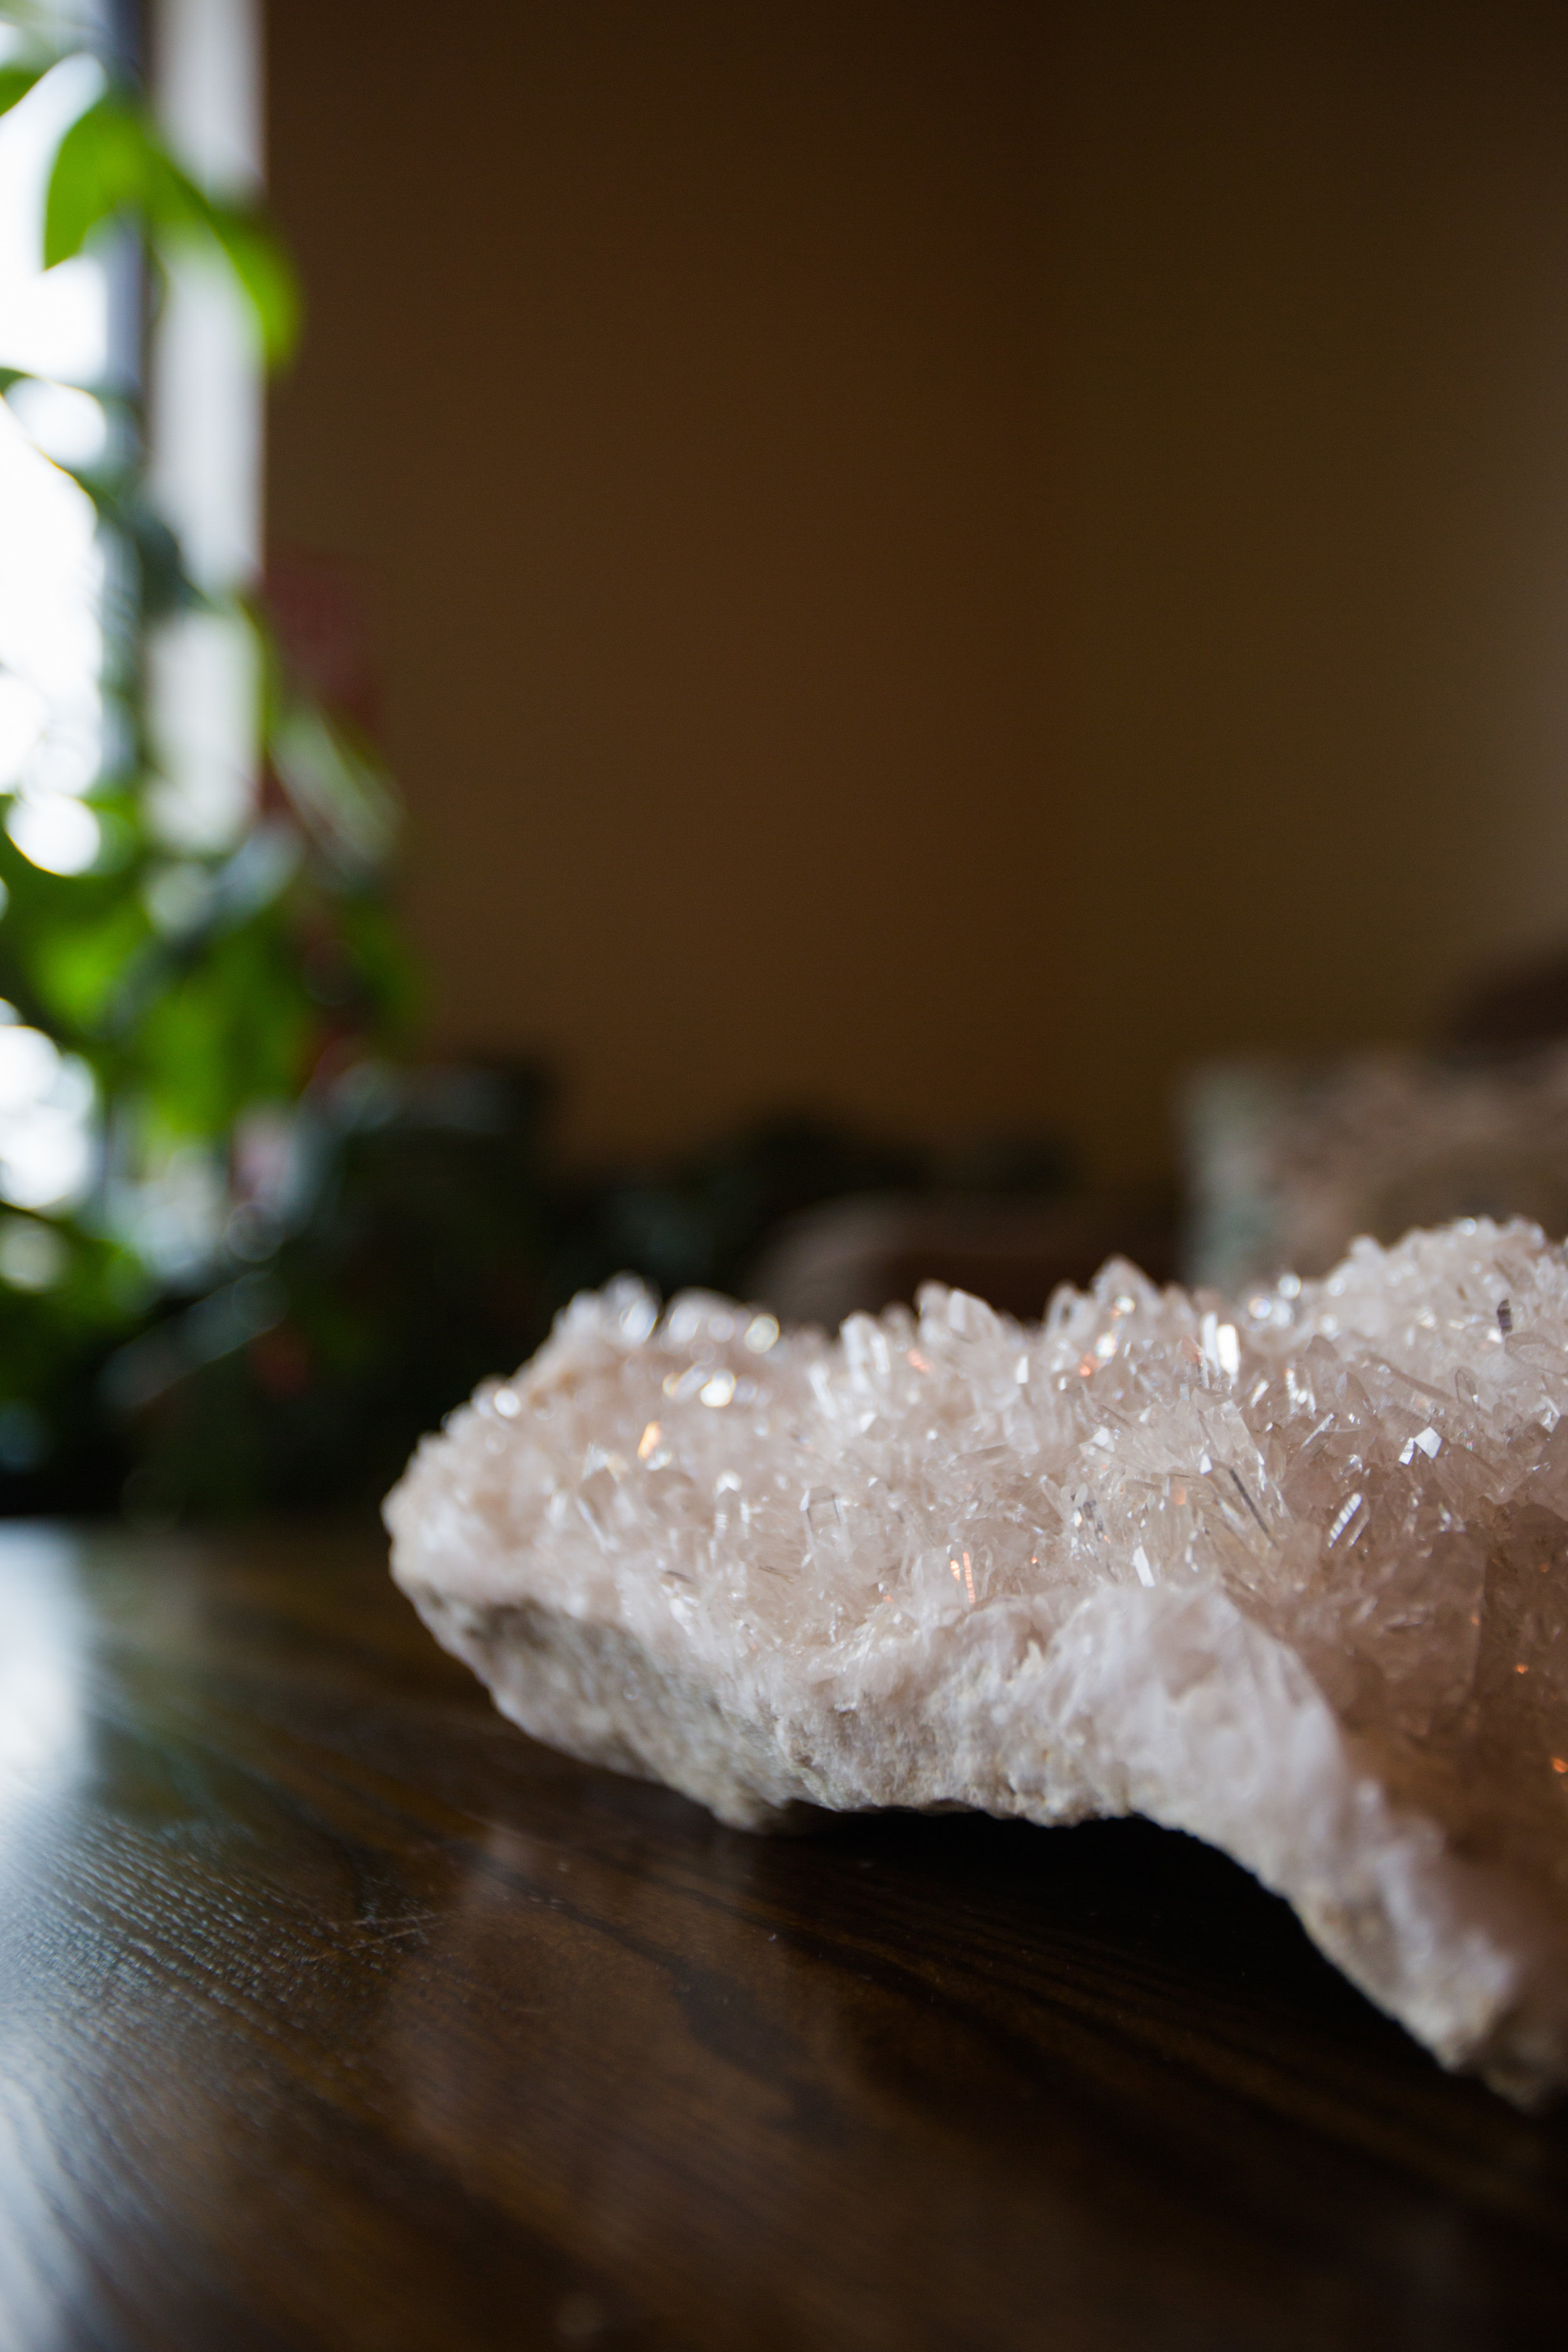 Crystal Cluster in the Lobby